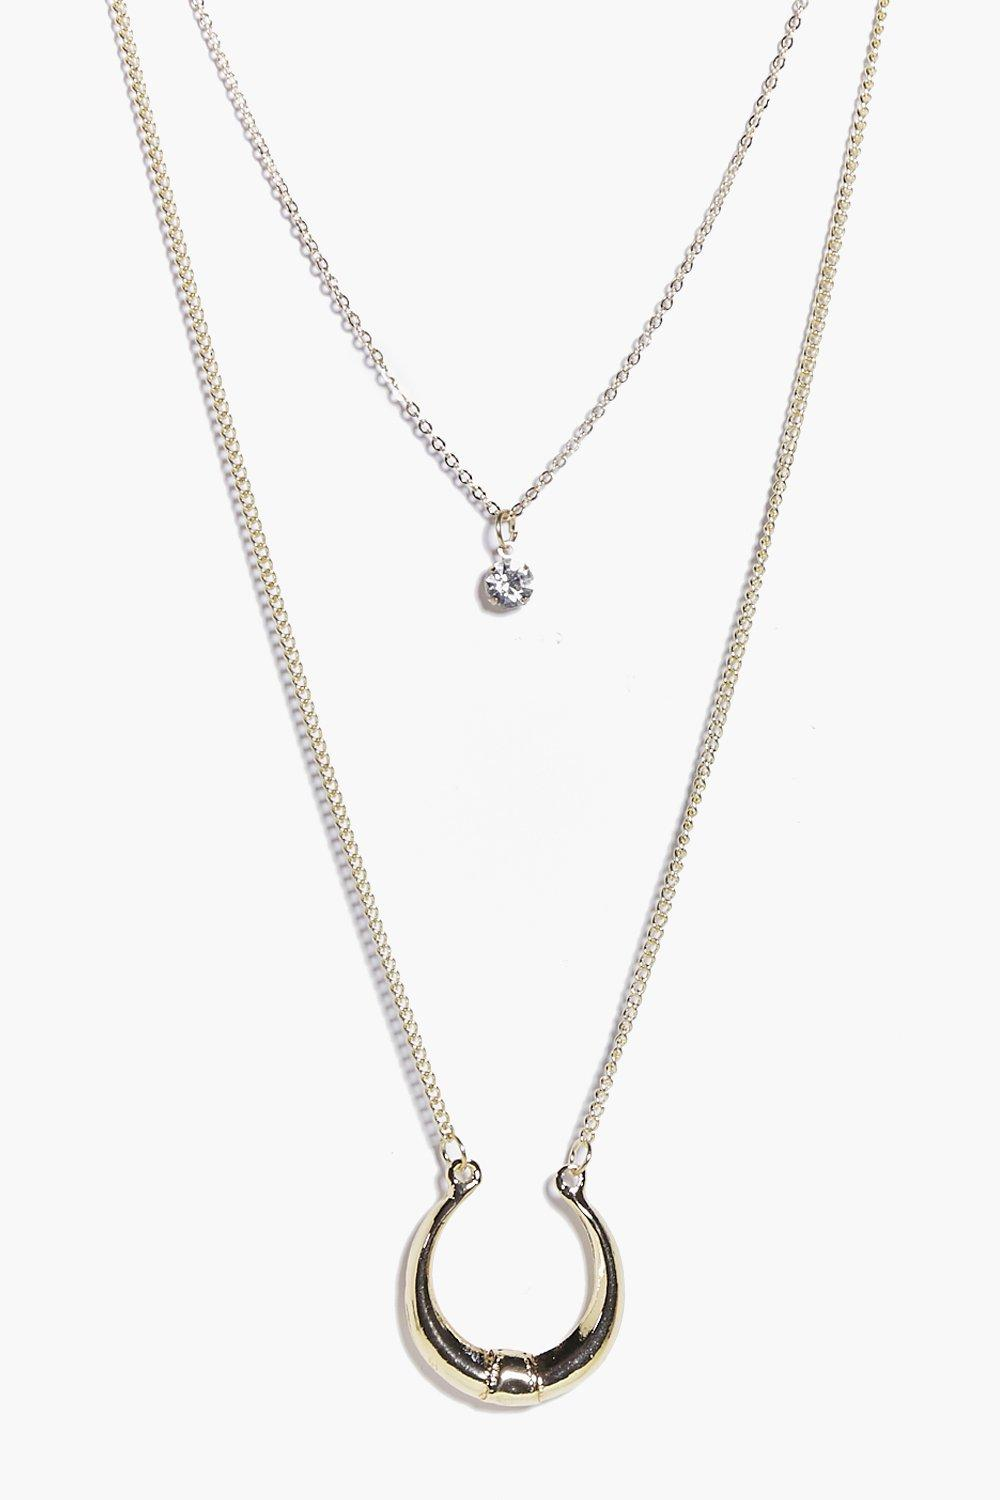 Rose Crescent & Diamante Layered Necklace